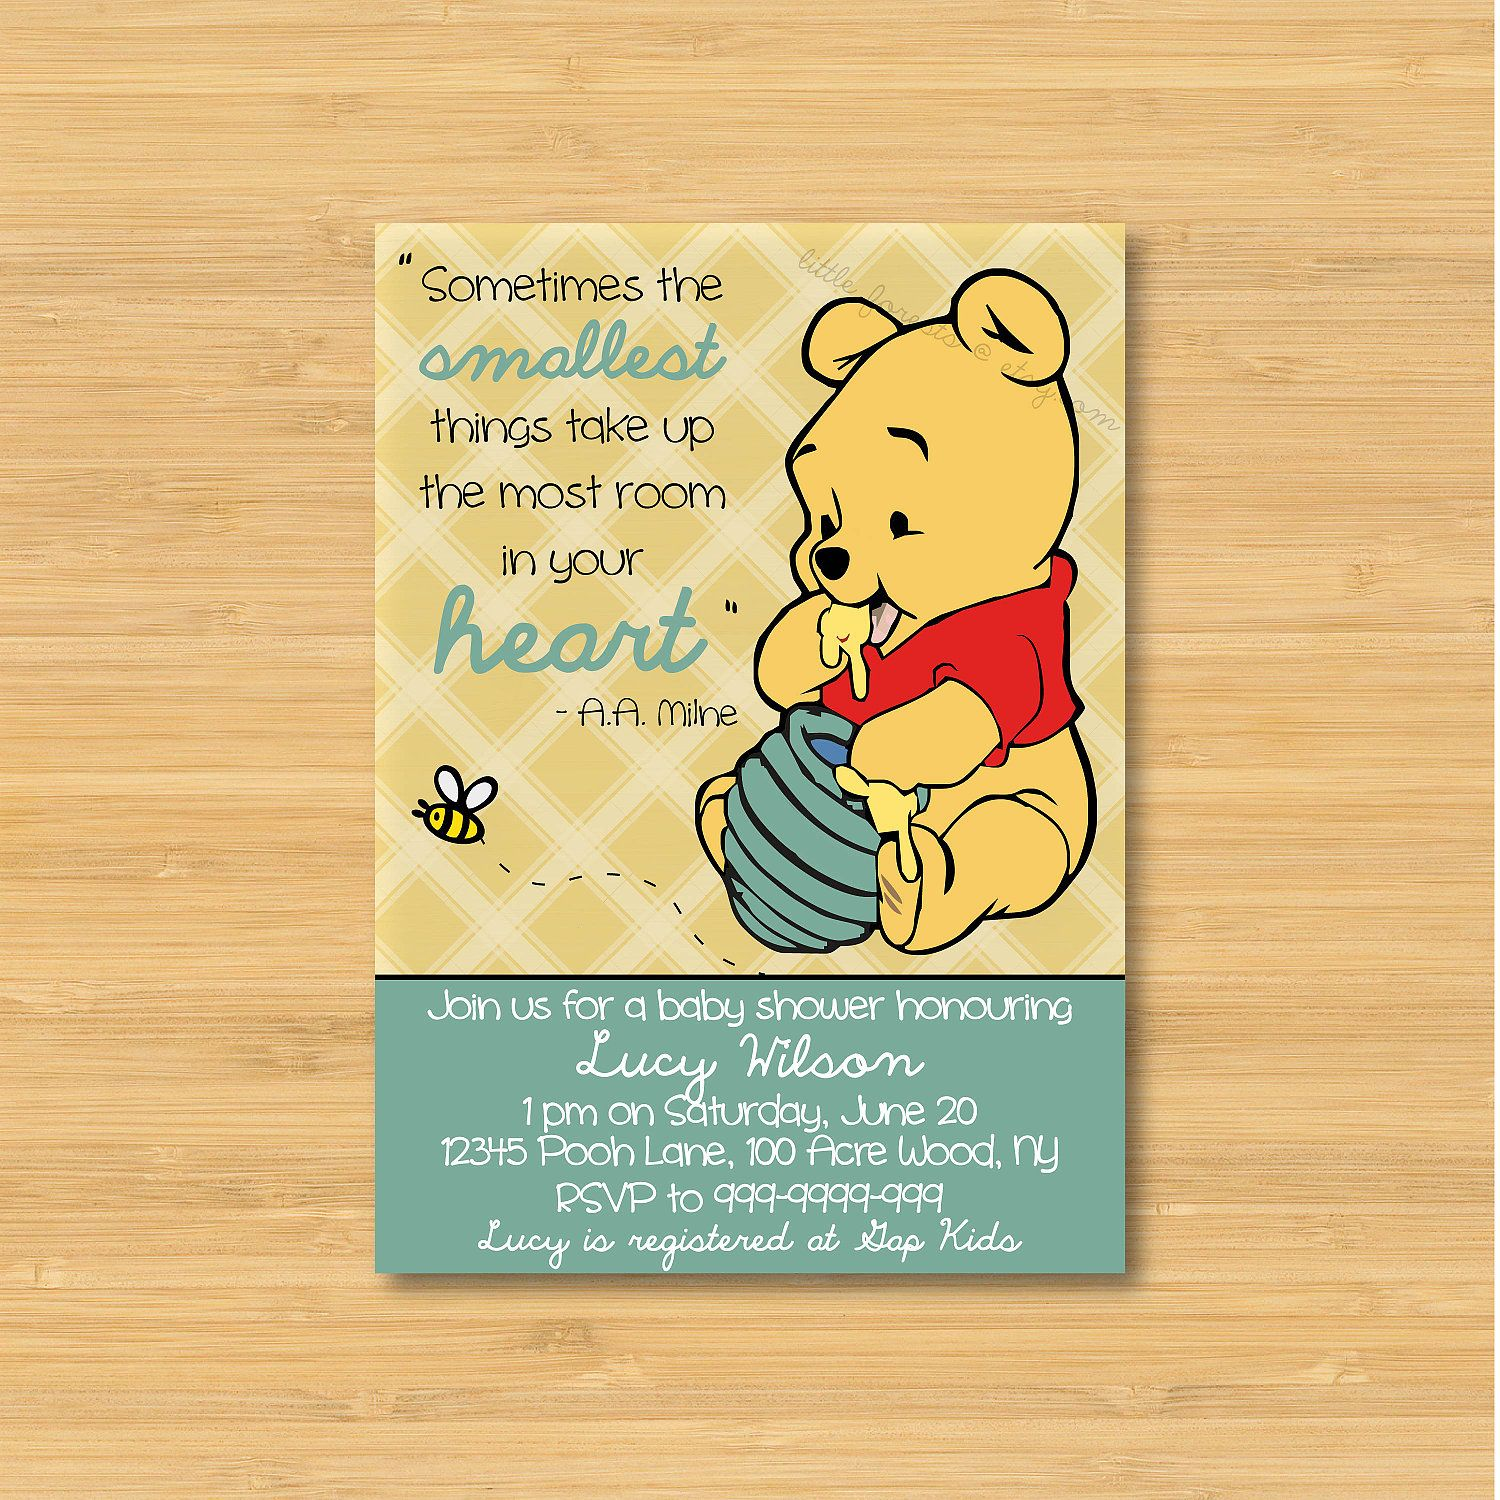 Winnie the Pooh Baby Shower Invitation - Printable - The Smallest ...